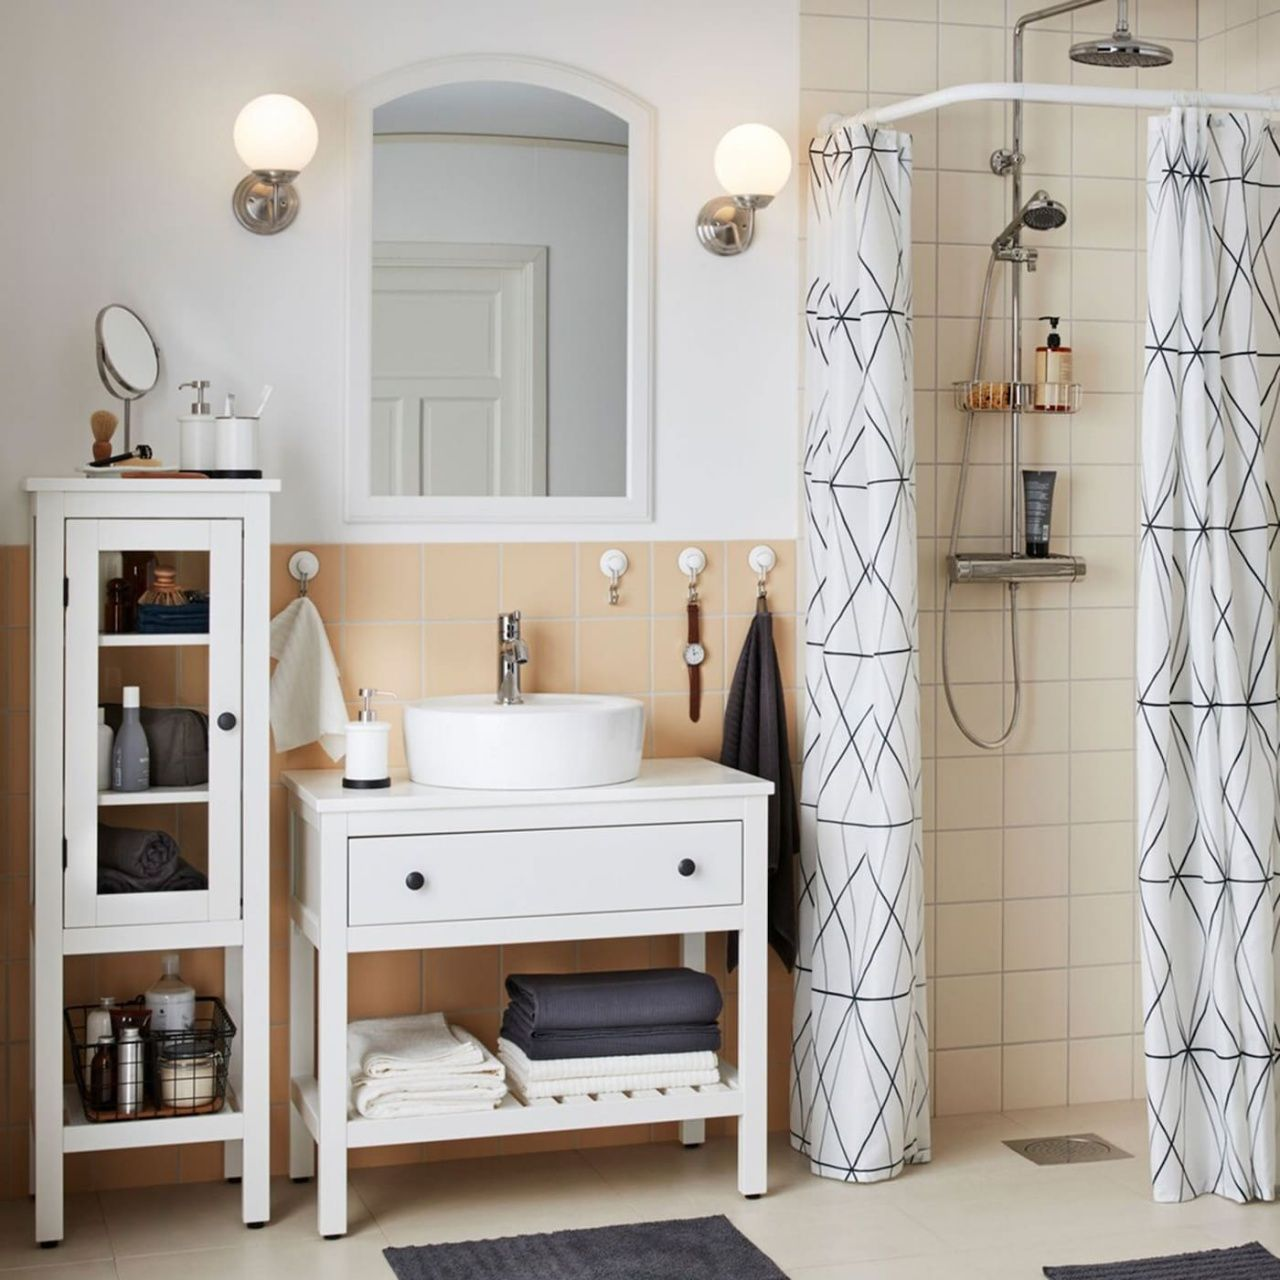 Ikea Hemnes Bathroom Vanity Review In 2020